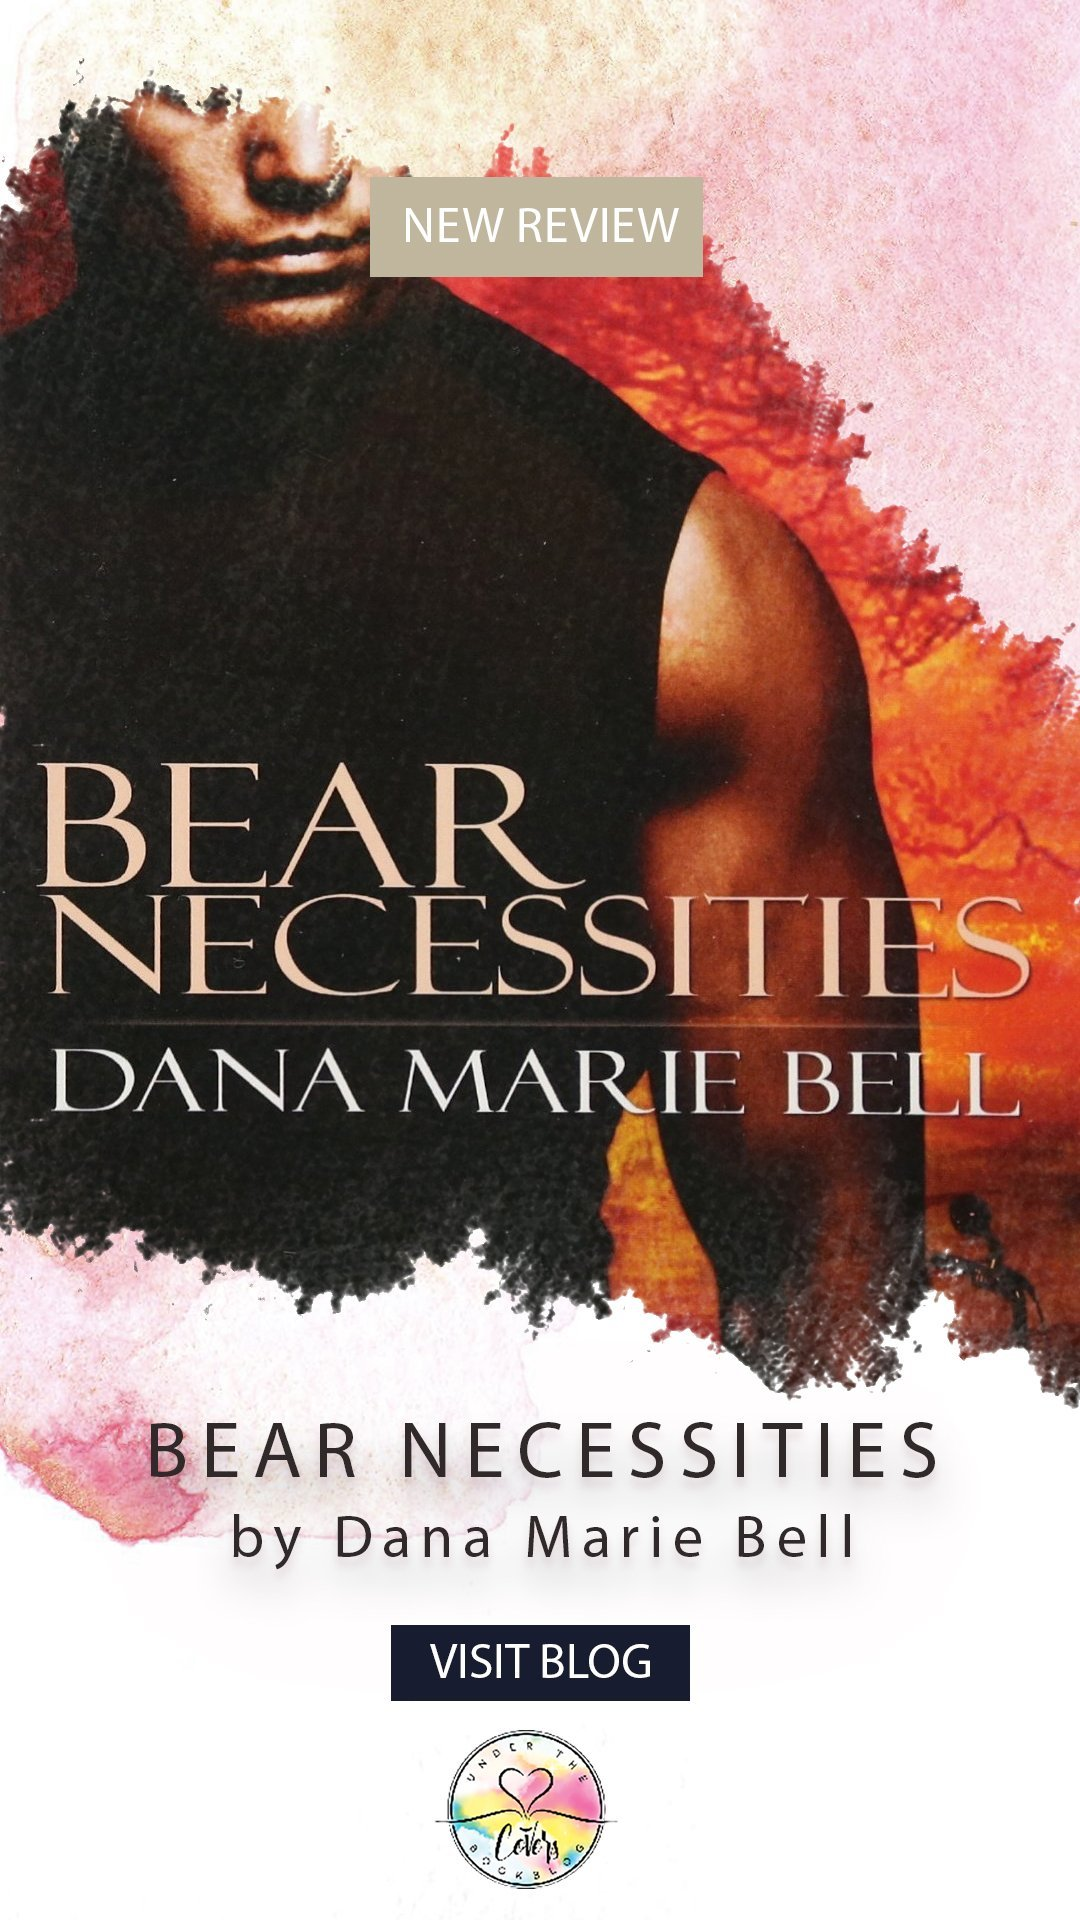 ROMANCEOPOLY Review: Bear Necessities by Dana Marie Bell